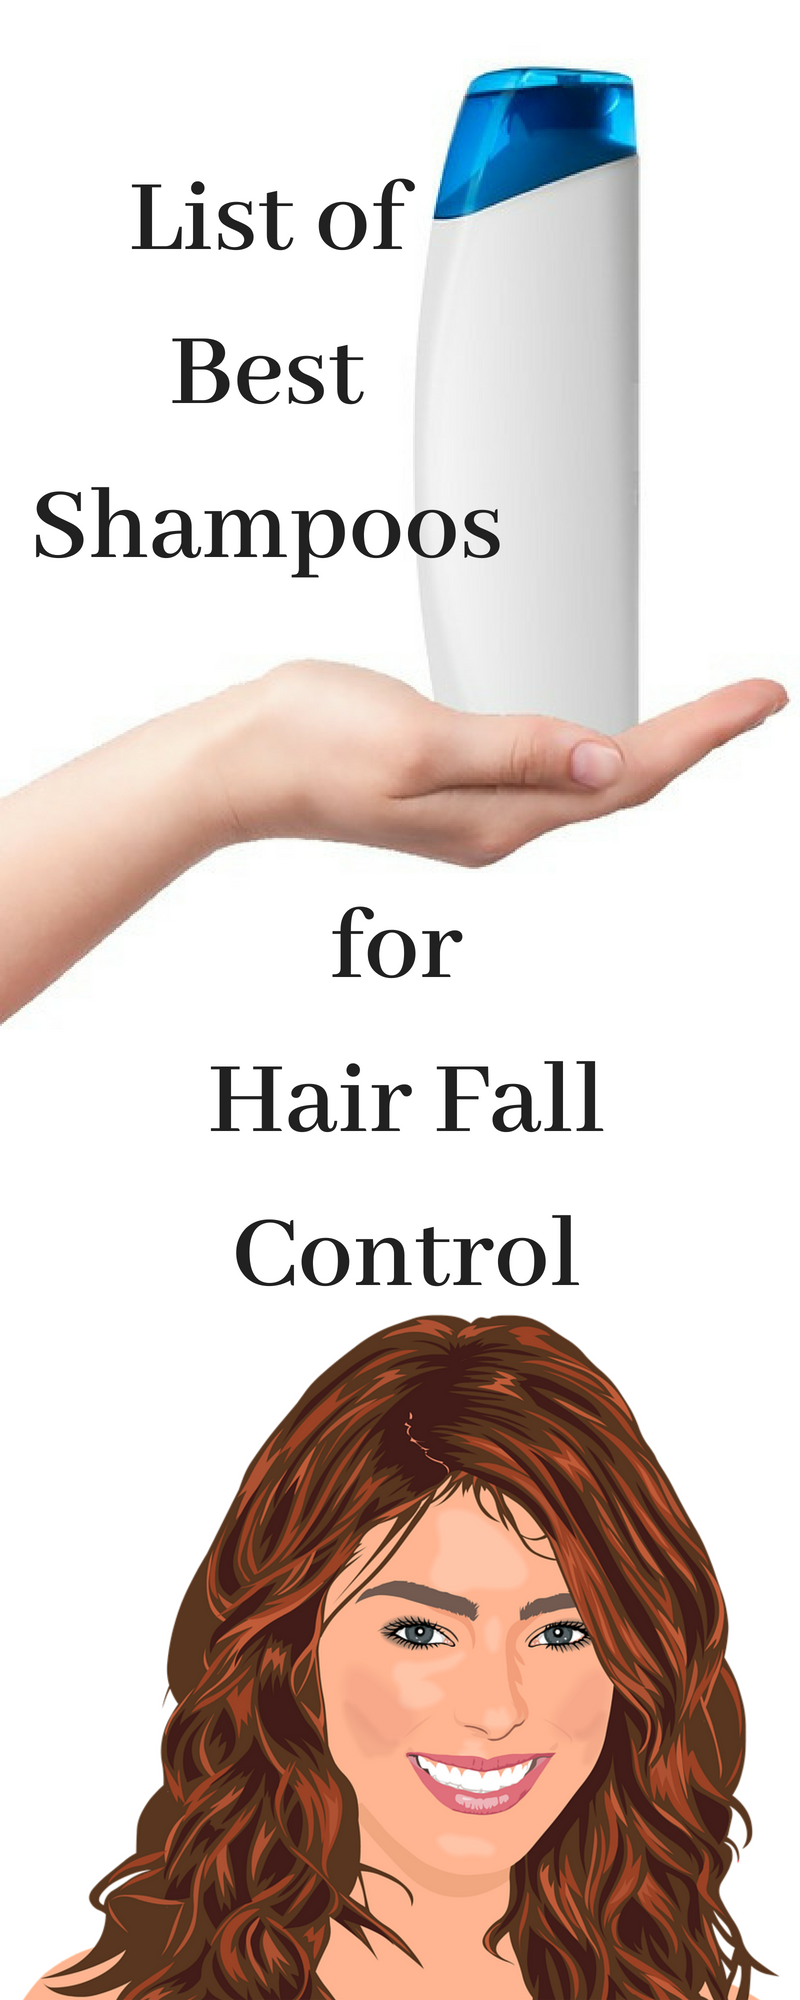 15 Trusted and Best Shampoos for Hair Fall Control in ...